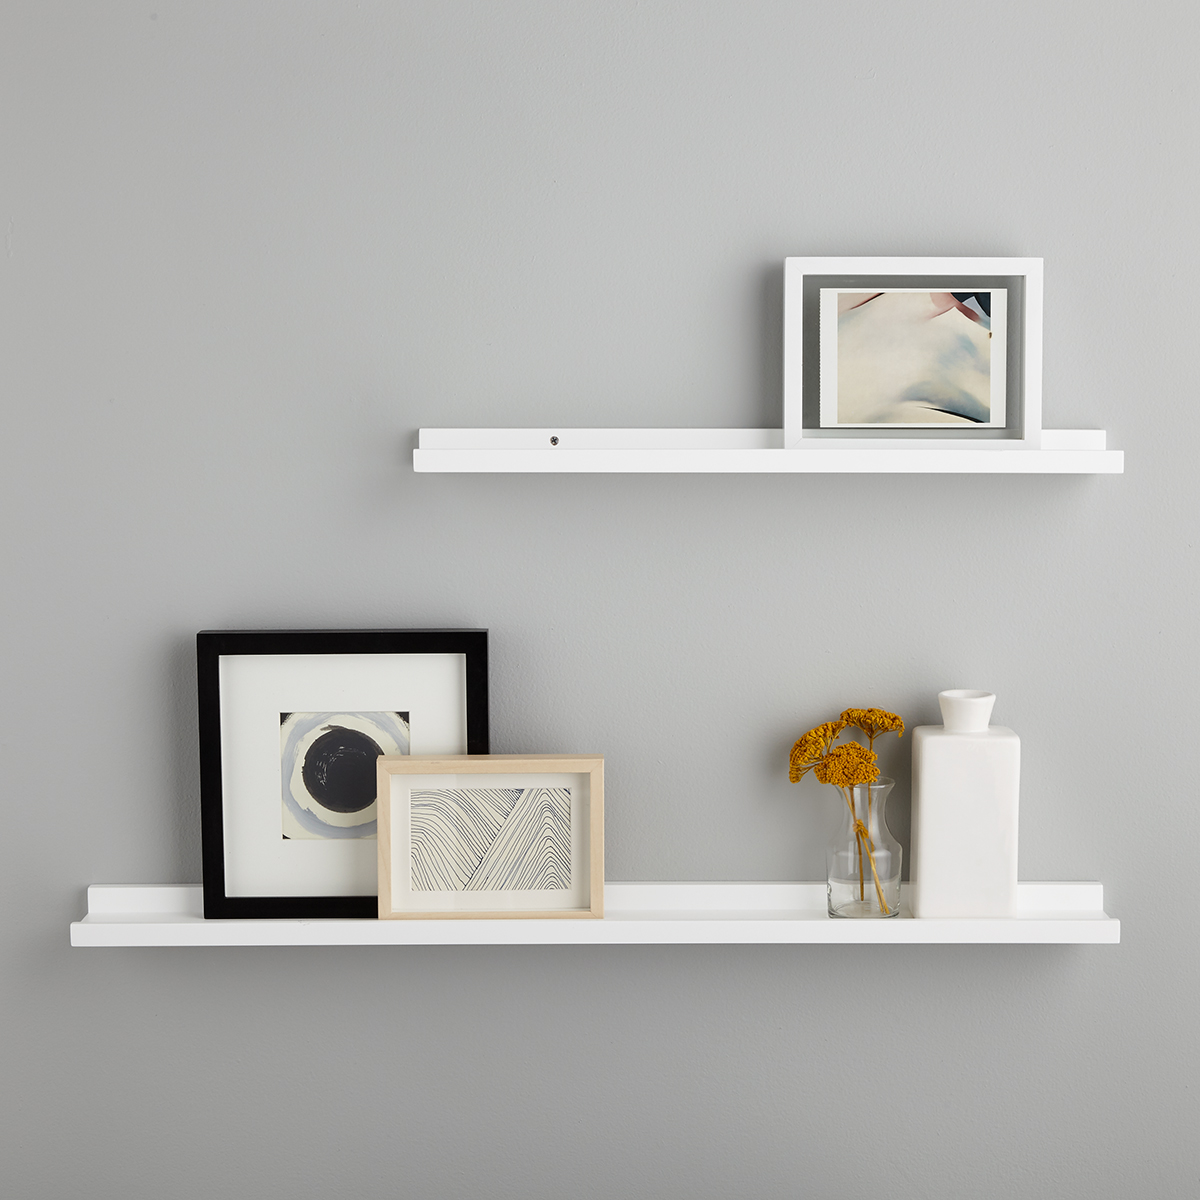 white ledge wall shelves the container store rh containerstore com Wall Shelves and Ledges white picture ledge shelves